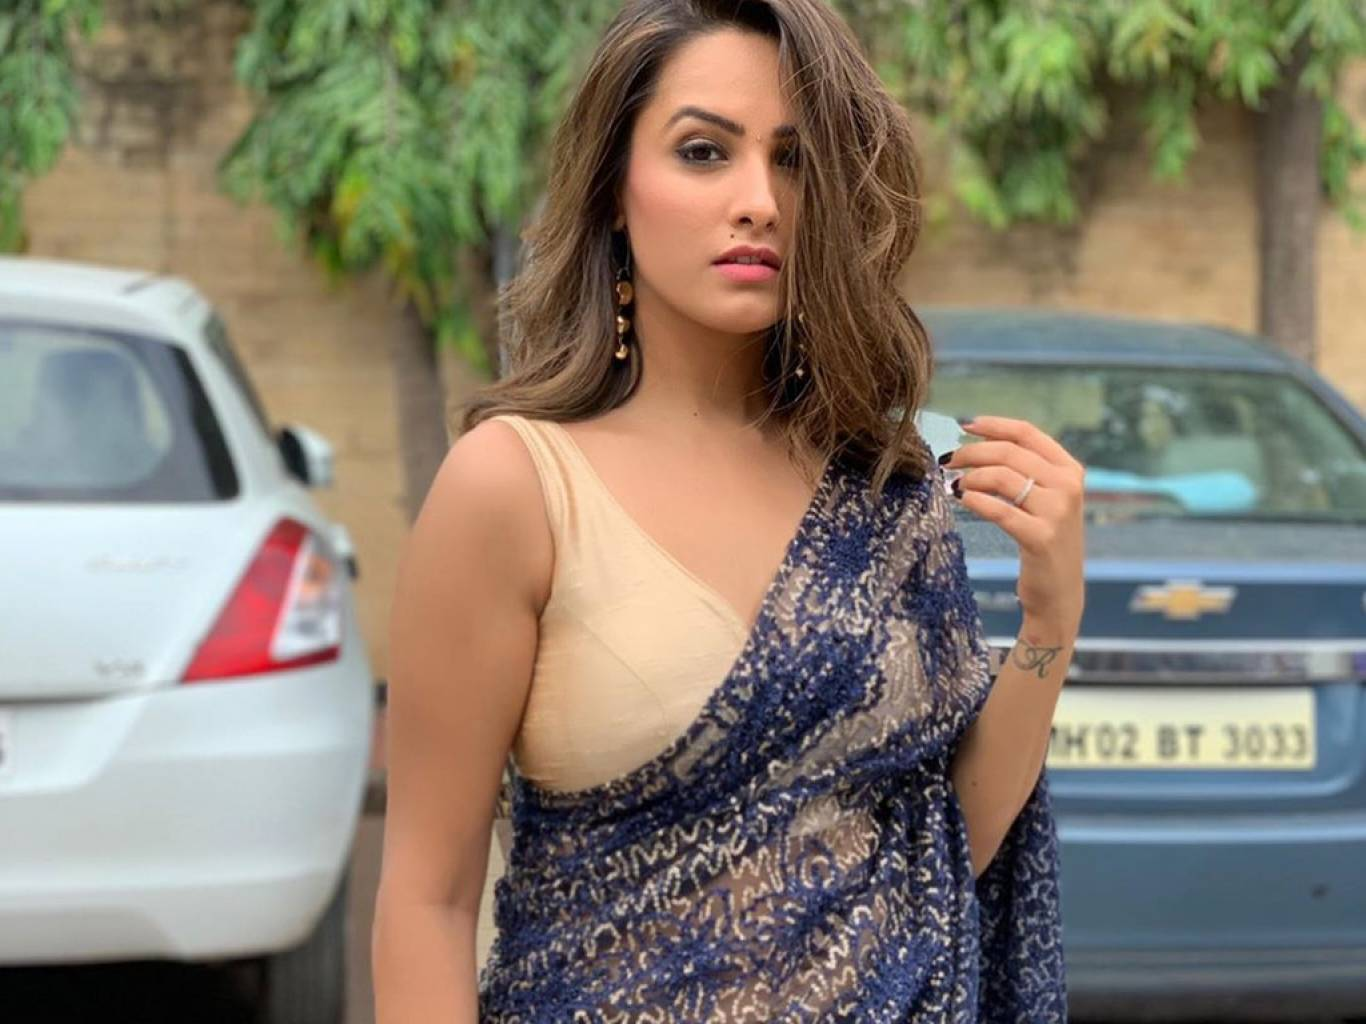 Anita Hassanandani Wallpapers